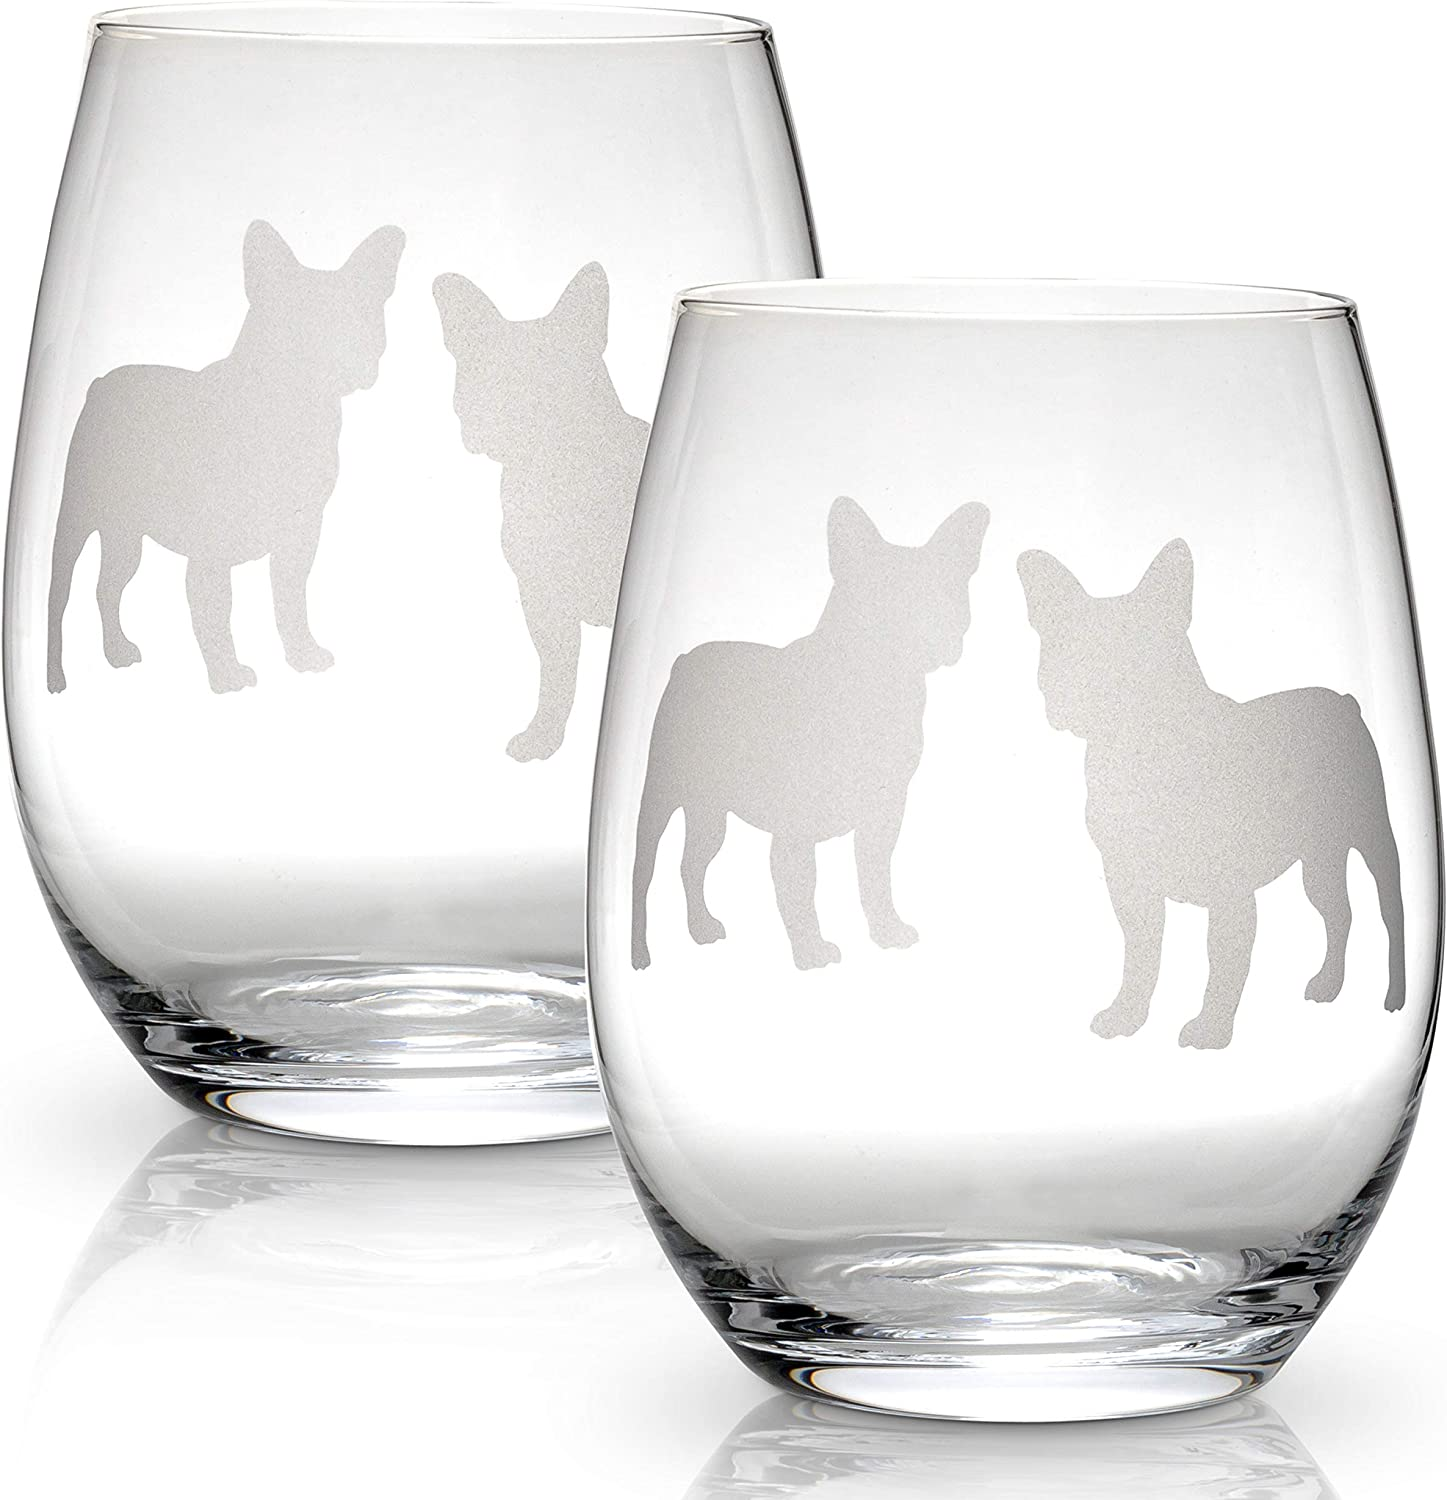 Boston Terrier Stemless Wine Glass (Single Glass) | Unique Gift for Dog Lovers | Hand Etched with Breed Name on Bottom